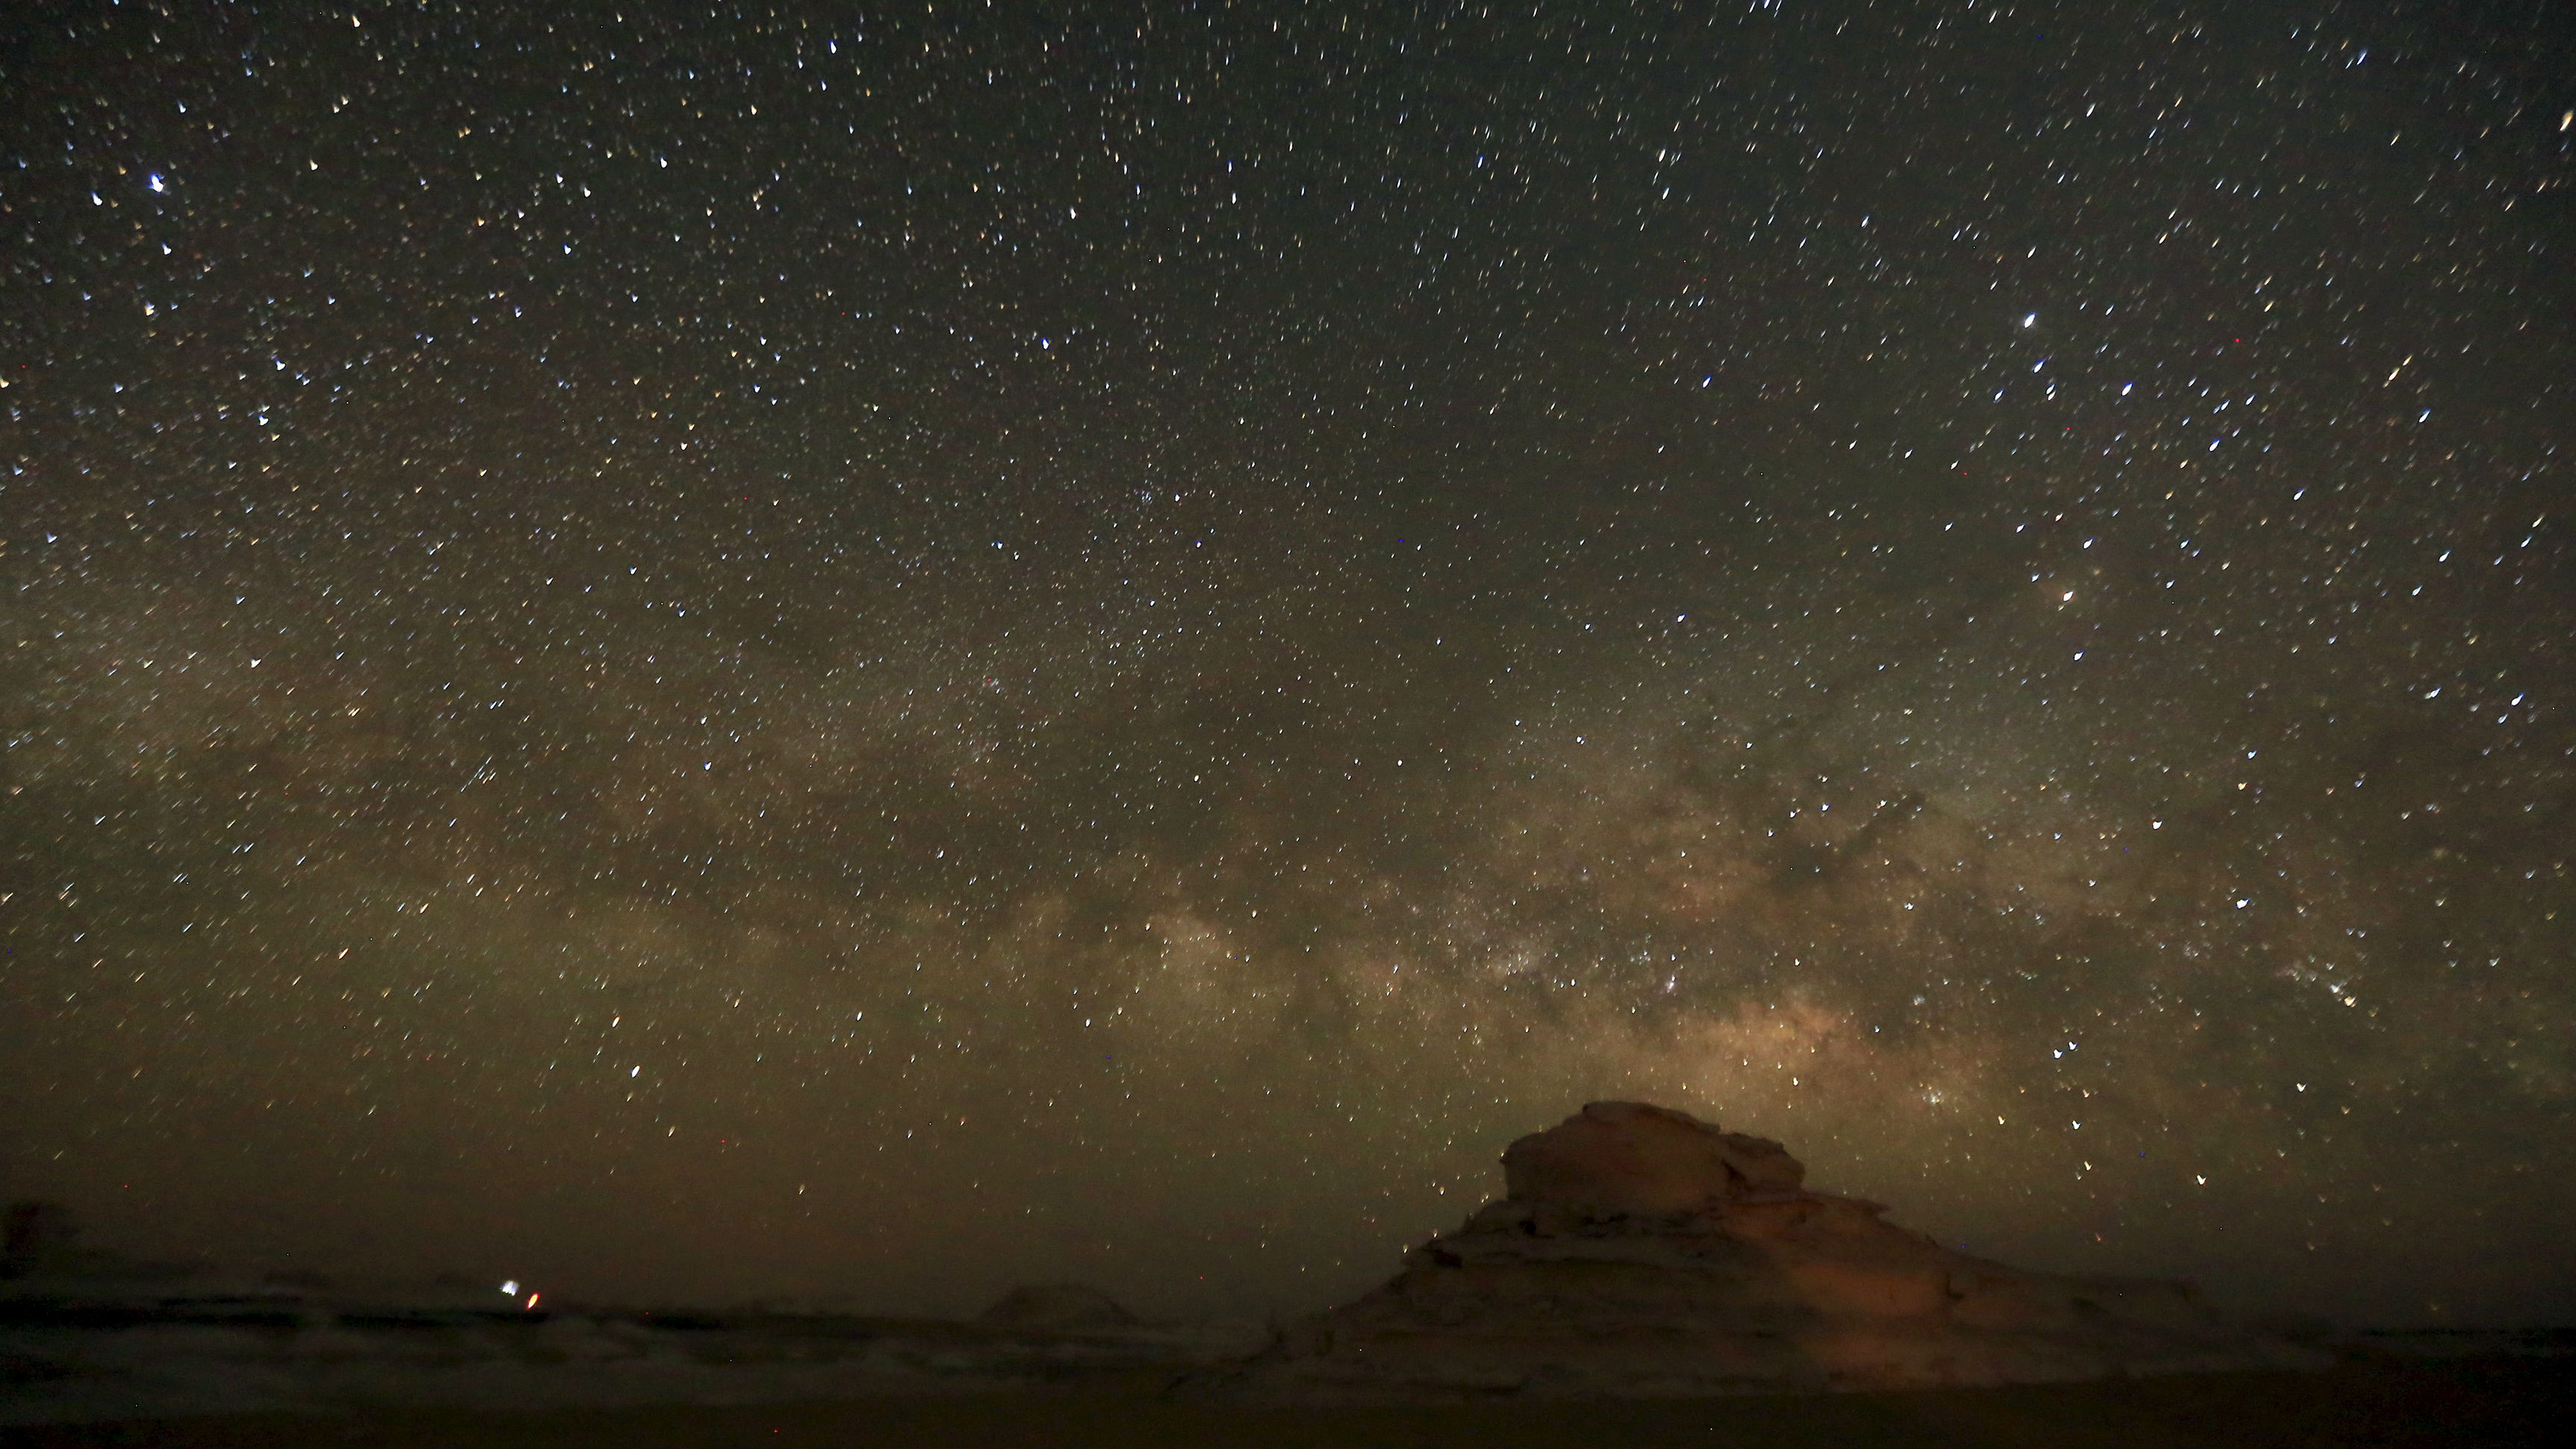 The 'Milky Way' is seen in the night sky over rocks in the White Desert north of the Farafra Oasis southwest of Cairo May 15, 2015. The White Desert, about 500 km southwest of the Egyptian capital Cairo, features limestone and chalk forms strangely shaped by the wind and sand, a terrain that gains in intensity when illuminated by the moon. Slightly to the north lies the Black Desert, given its name by the volcanic rock dolerite, similar to basalt. Four-by-four and trekking trips for tourists include Bedouin music around campfires and nights slept under a breathtaking array of stars. Picture taken May 15, 2015.